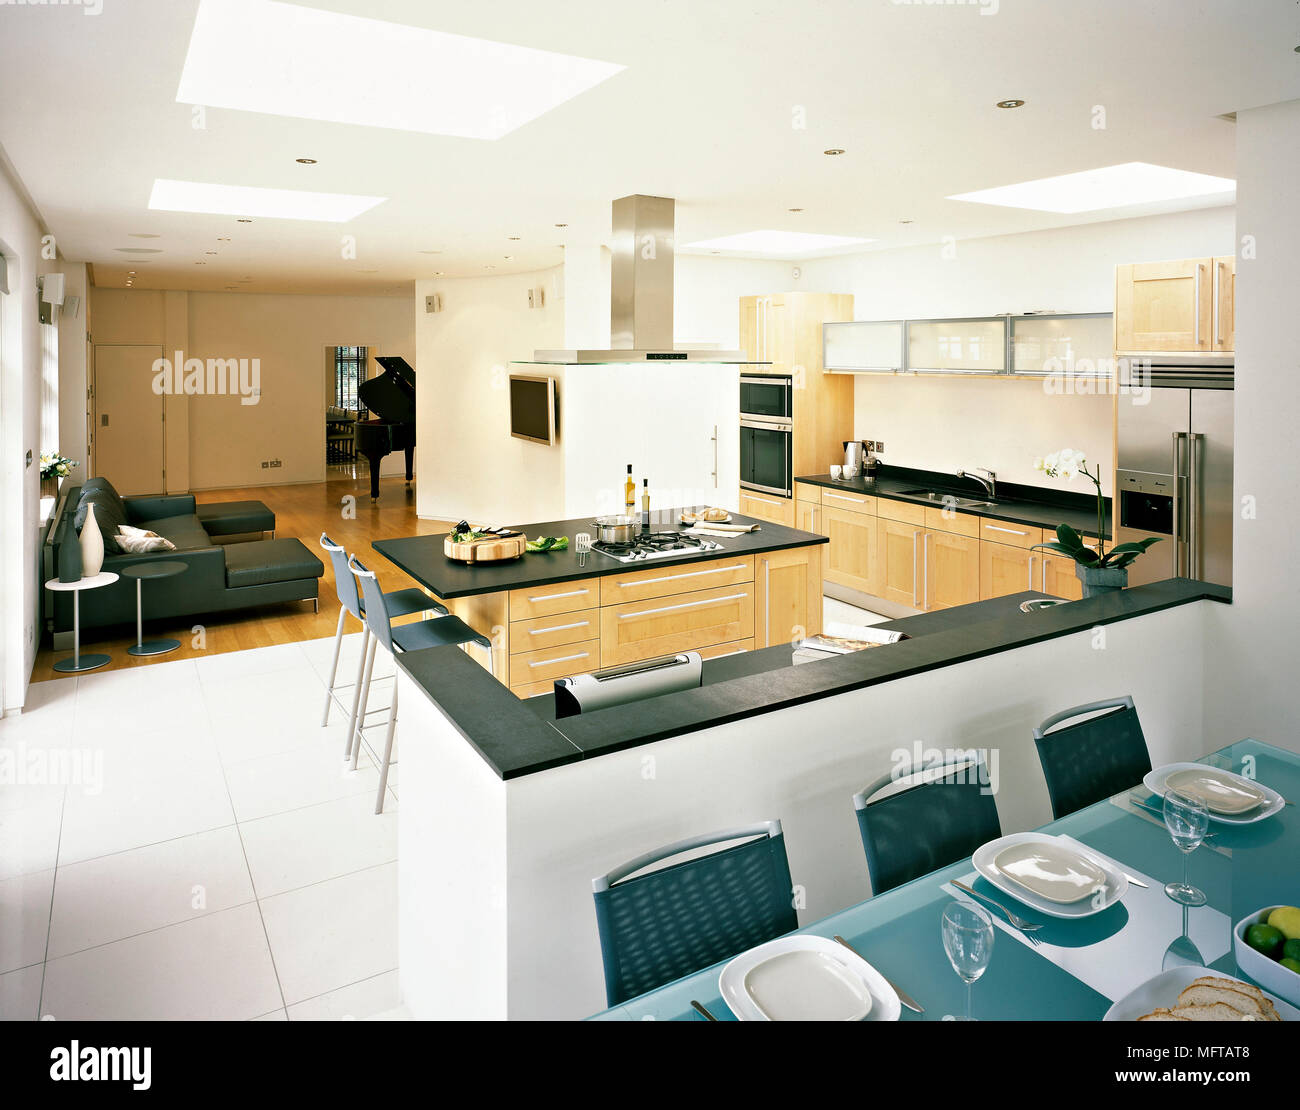 Open Plan Kitchen And Dining Area With Table Breakfast Bar Central Island